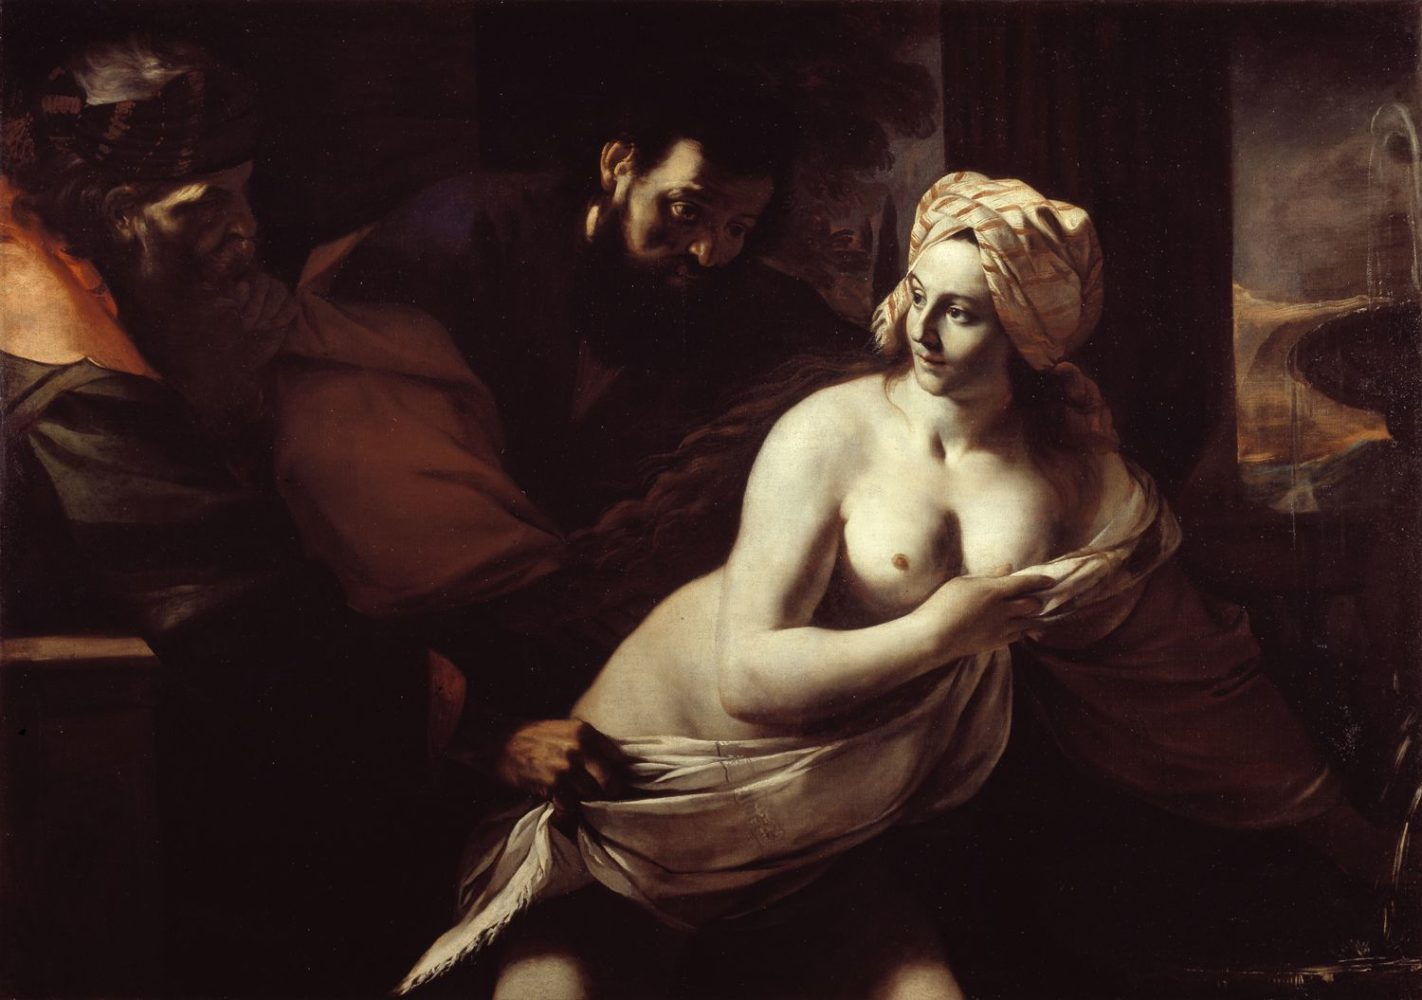 From Ribera to Luca Giordano